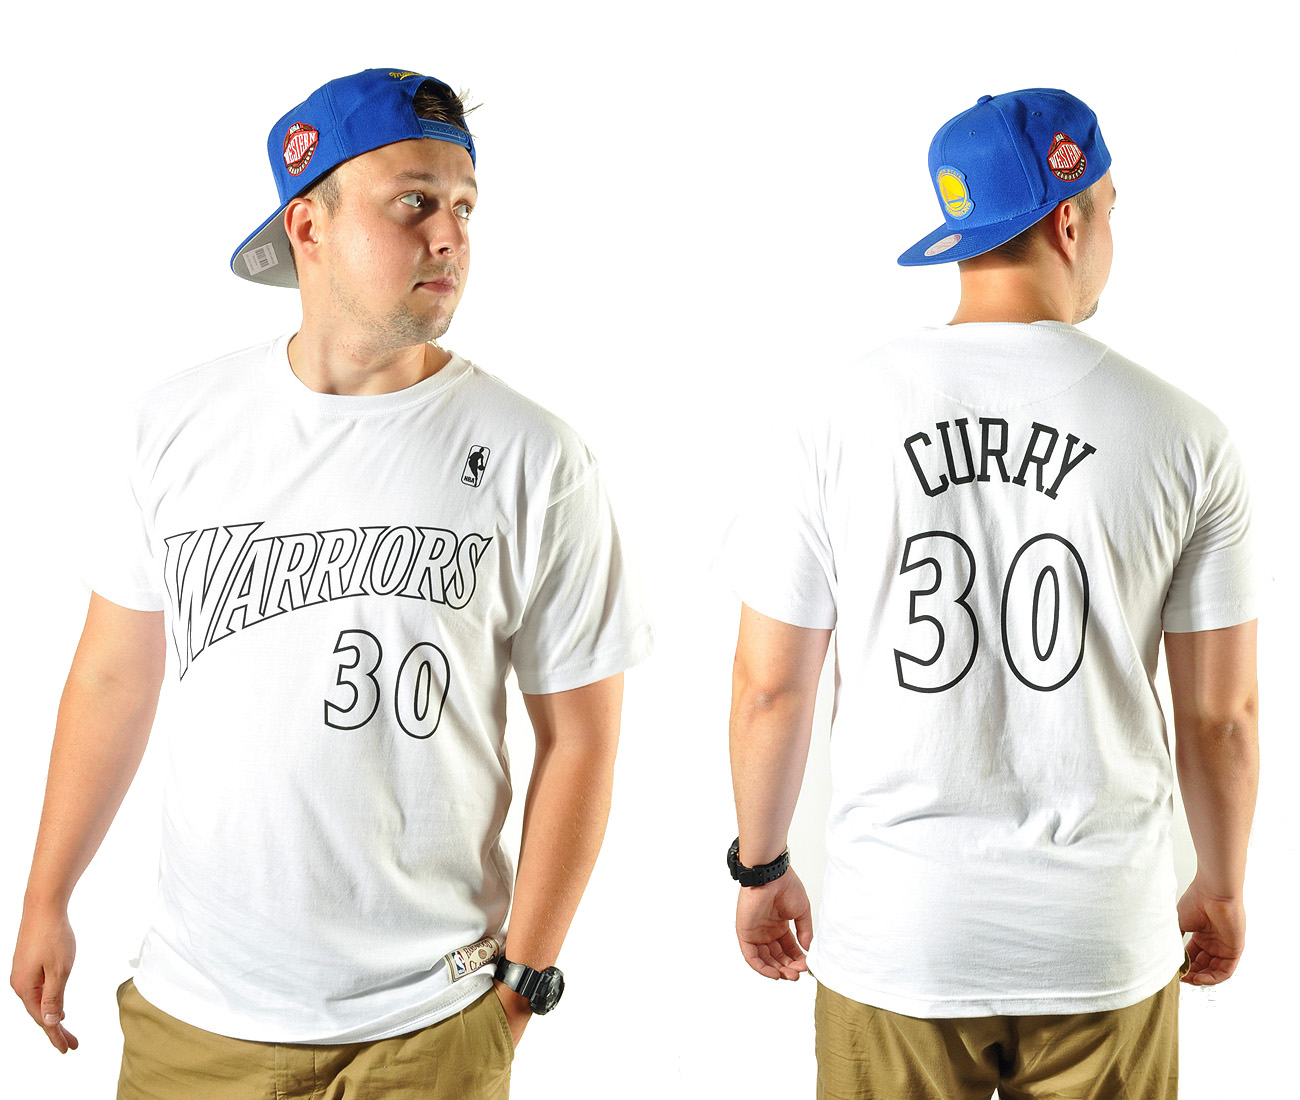 9e9d07078 Koszulka L Mitchell Ness WB Player Curry Warriors - 7403397738 ...